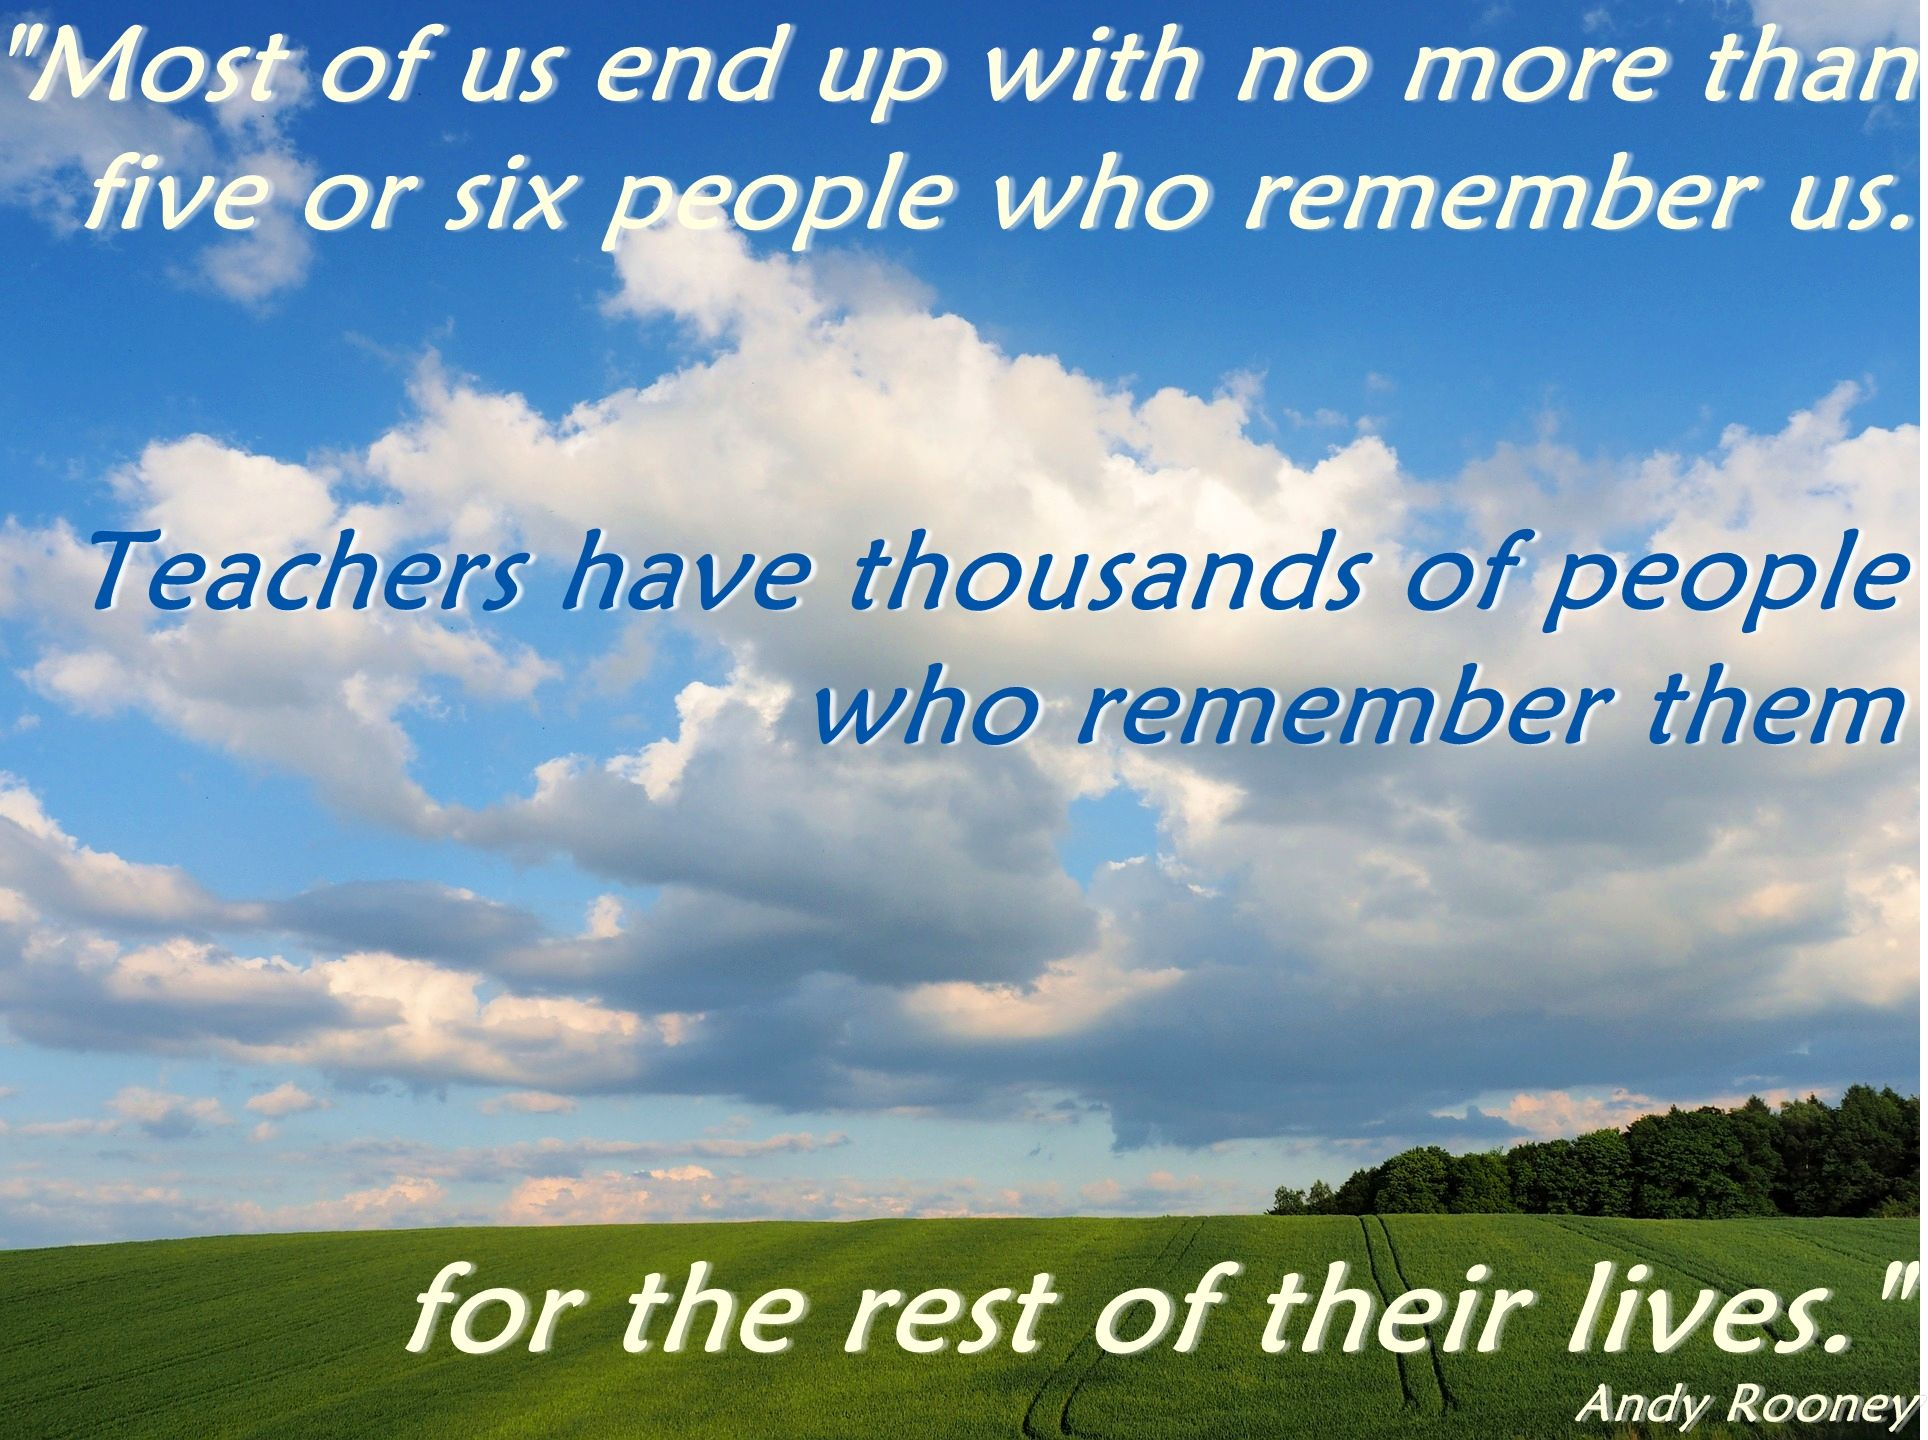 Remember that as a teacher you have a great impact on people's lives. It's not only film stars who are remembered fo decades after they finish working!